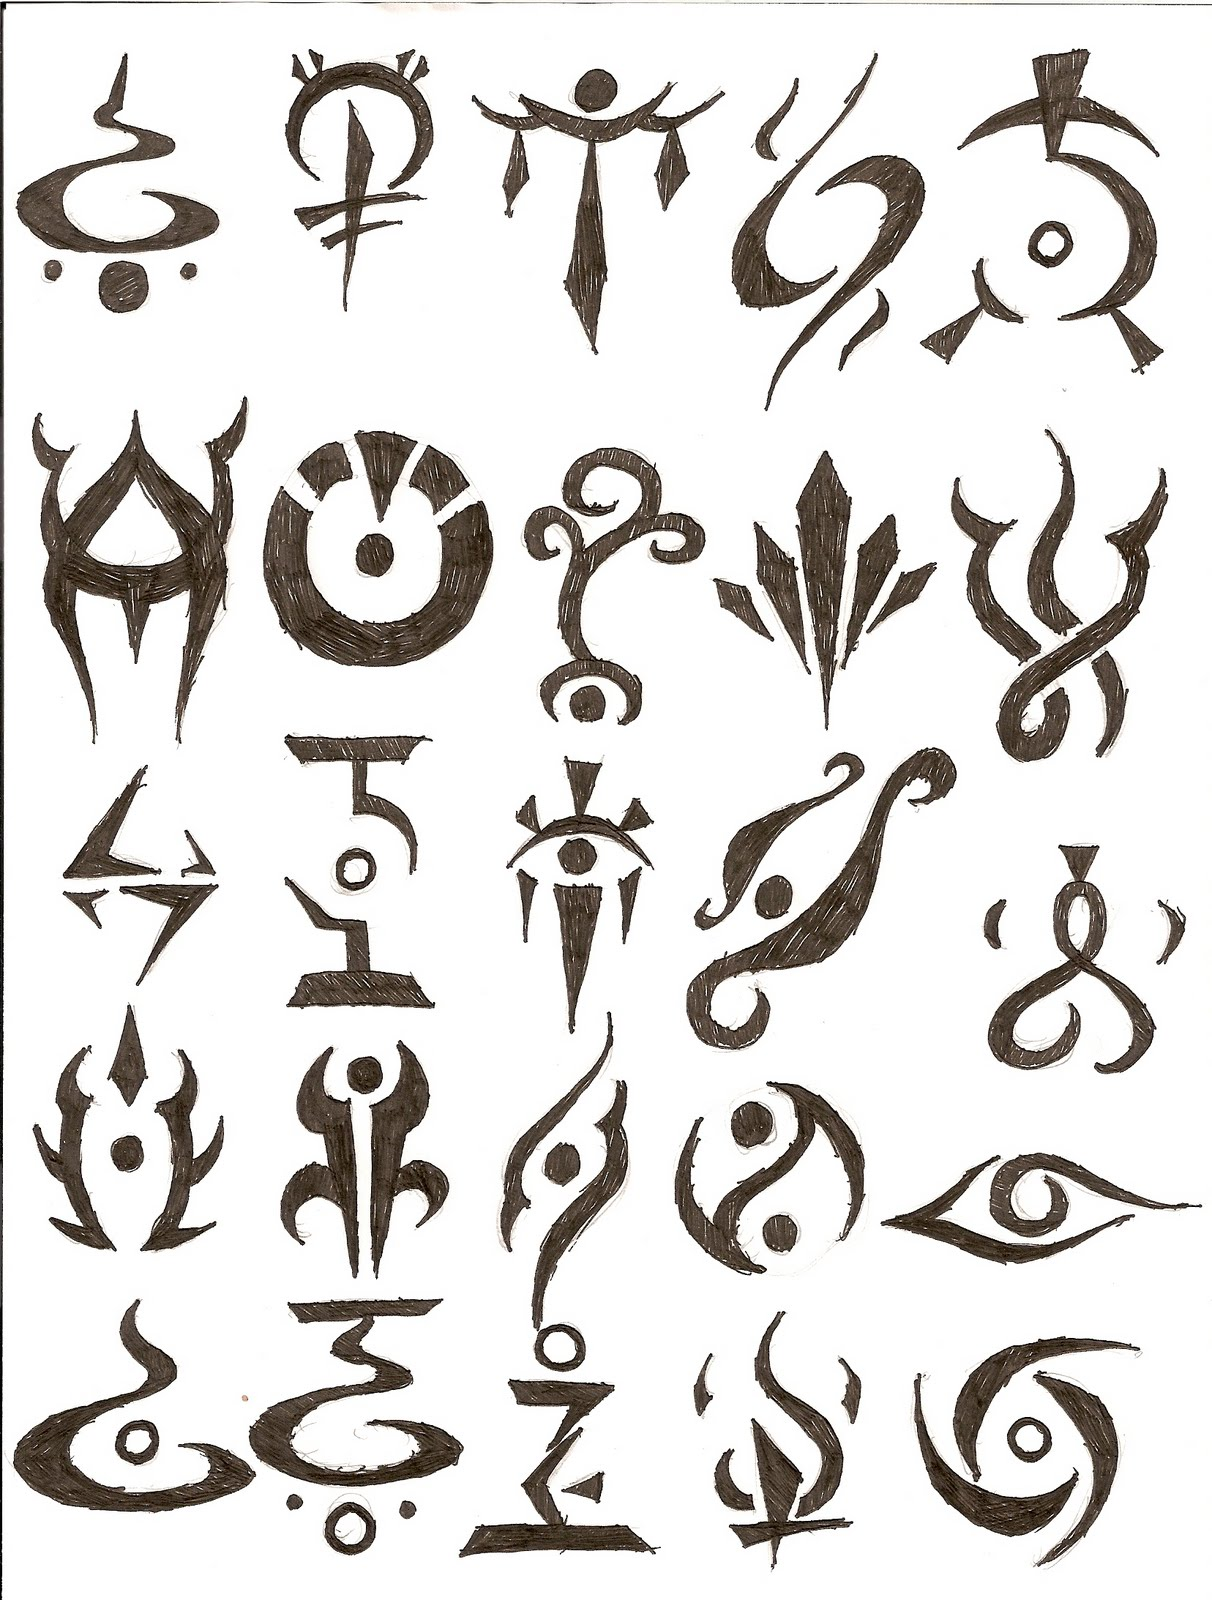 Best Tattoos For Men: Symbols For Tattoos